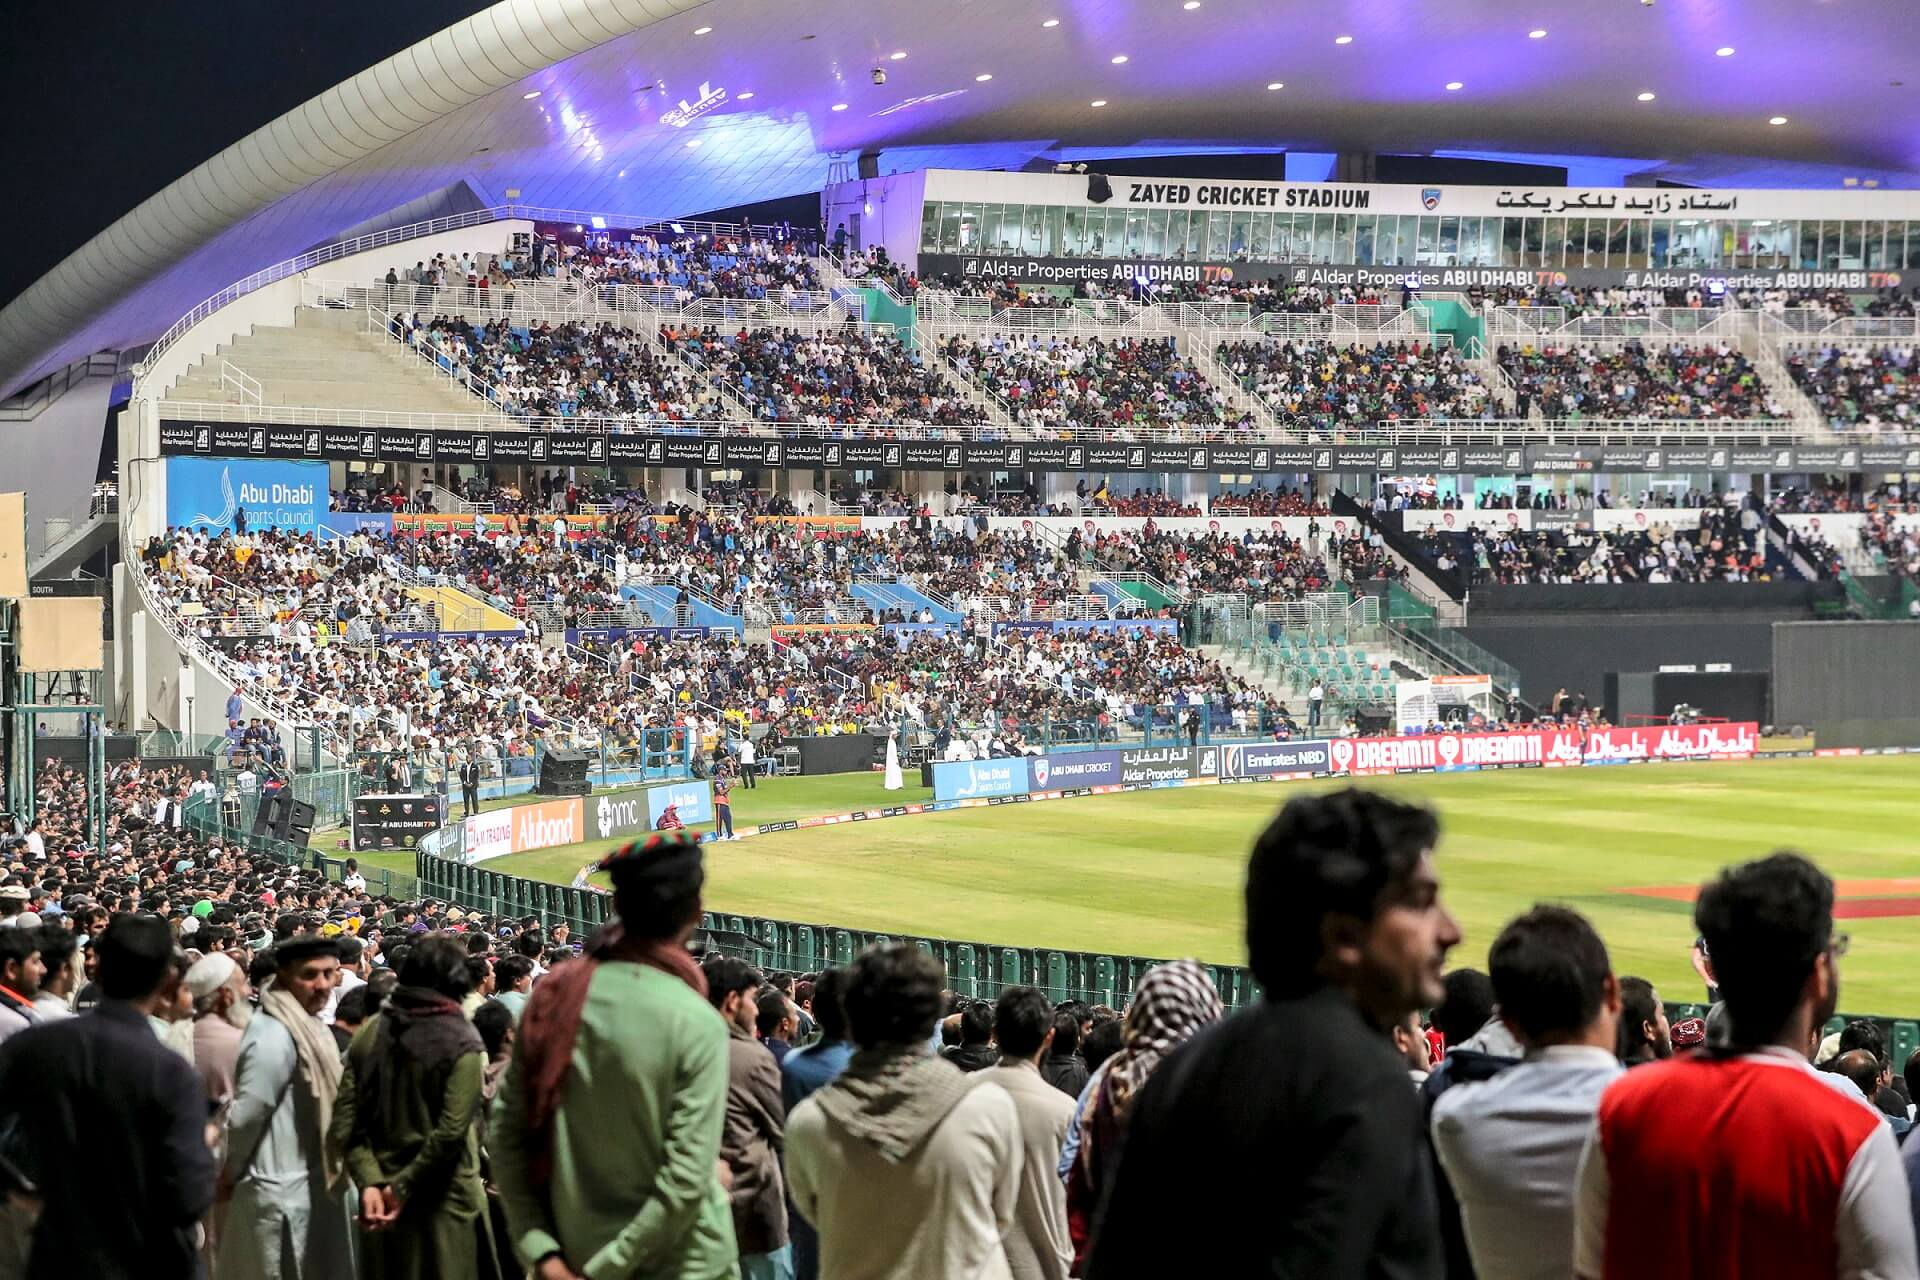 ALDAR PROPERTIES ABU DHABI T10 A HUGE SUCCESS WITH RECORD SMASHING 120,000 FANS ATTENDING THE 2019 SPORTING  SPECTACLE